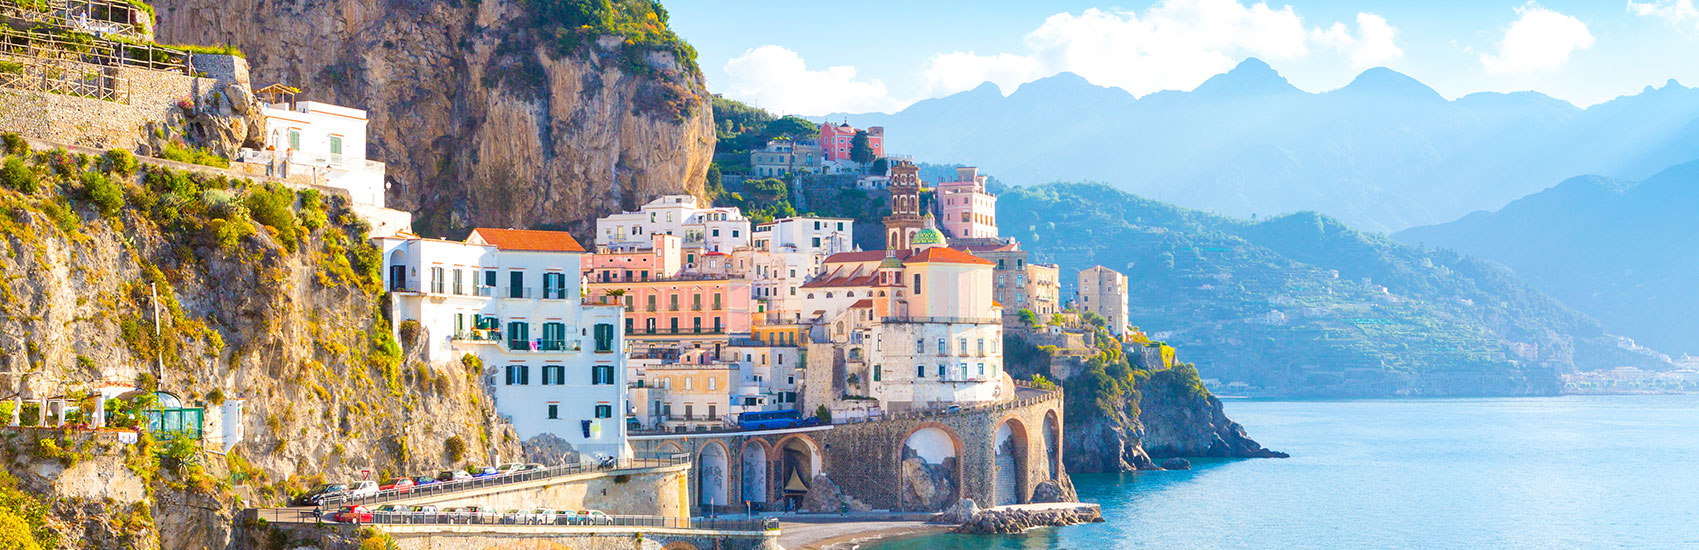 Sorrento, Amalfi Coast and Rome! 1